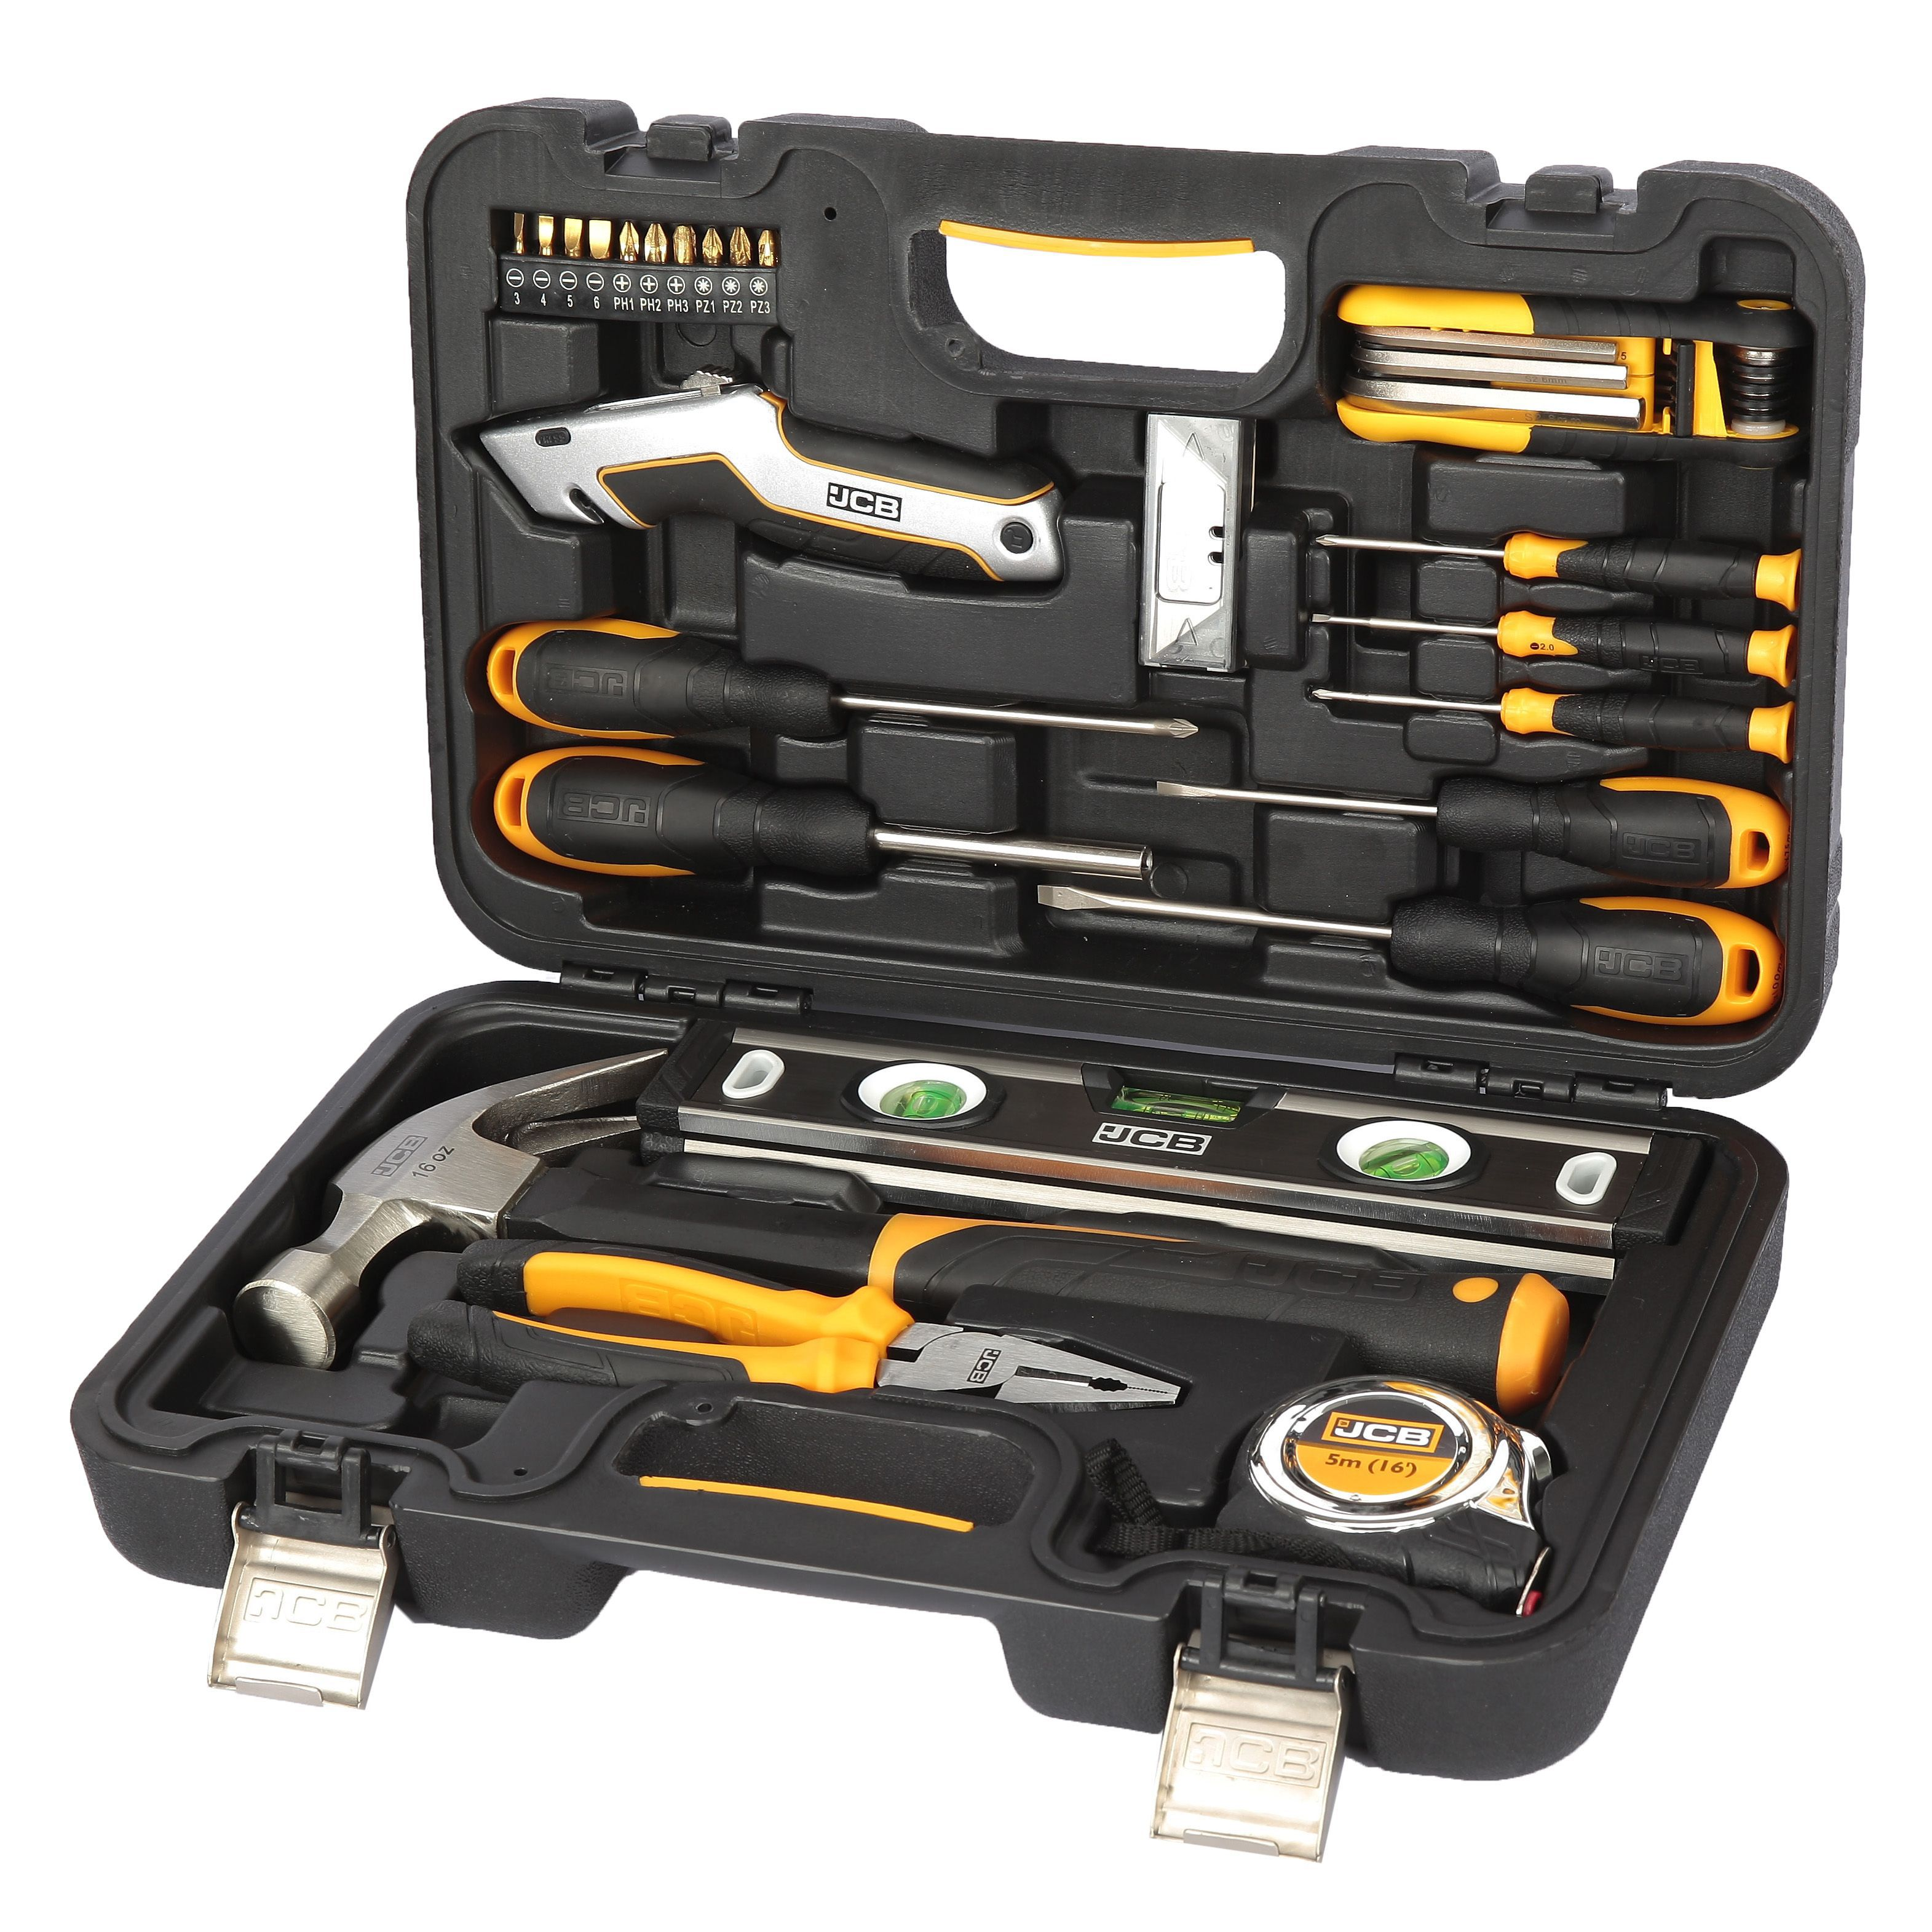 Jcb 30 Piece Heavy Duty Tool Kit Departments Tradepoint